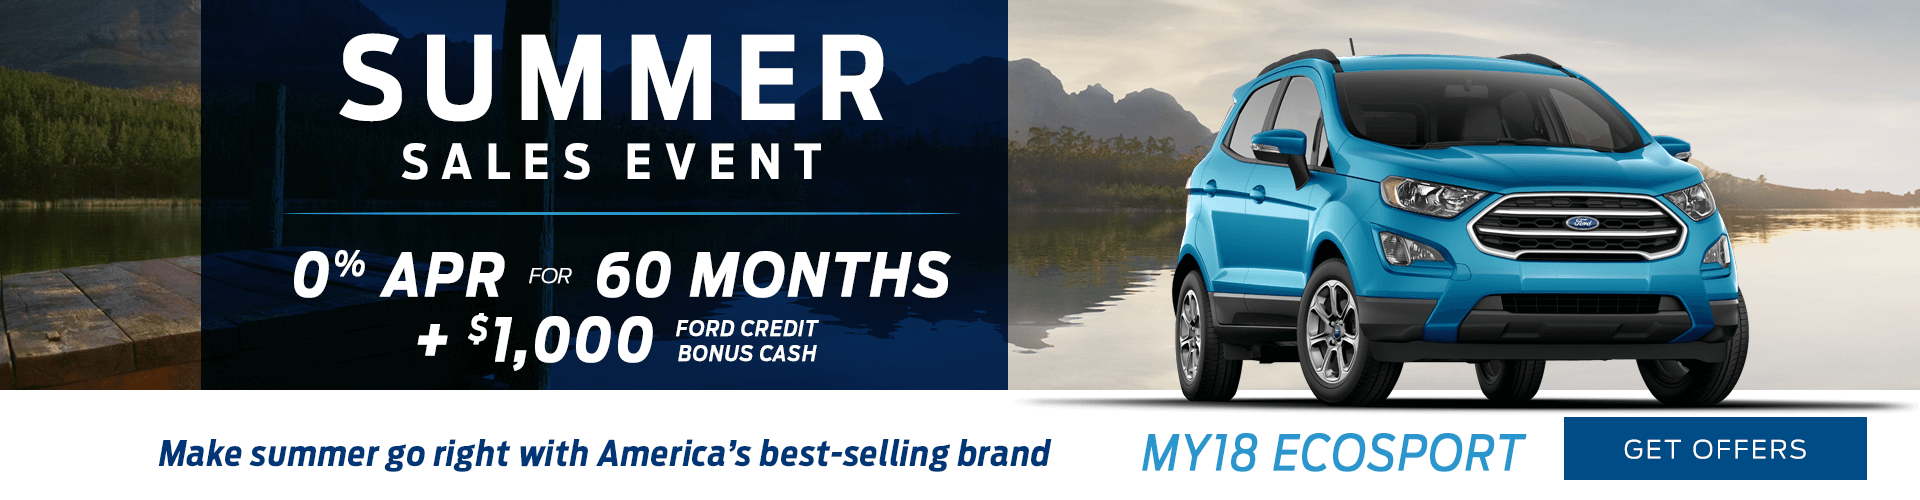 Special offer on 2018 Ford EcoSport 2018 Ford EcoSport Summer Sales Event Offer